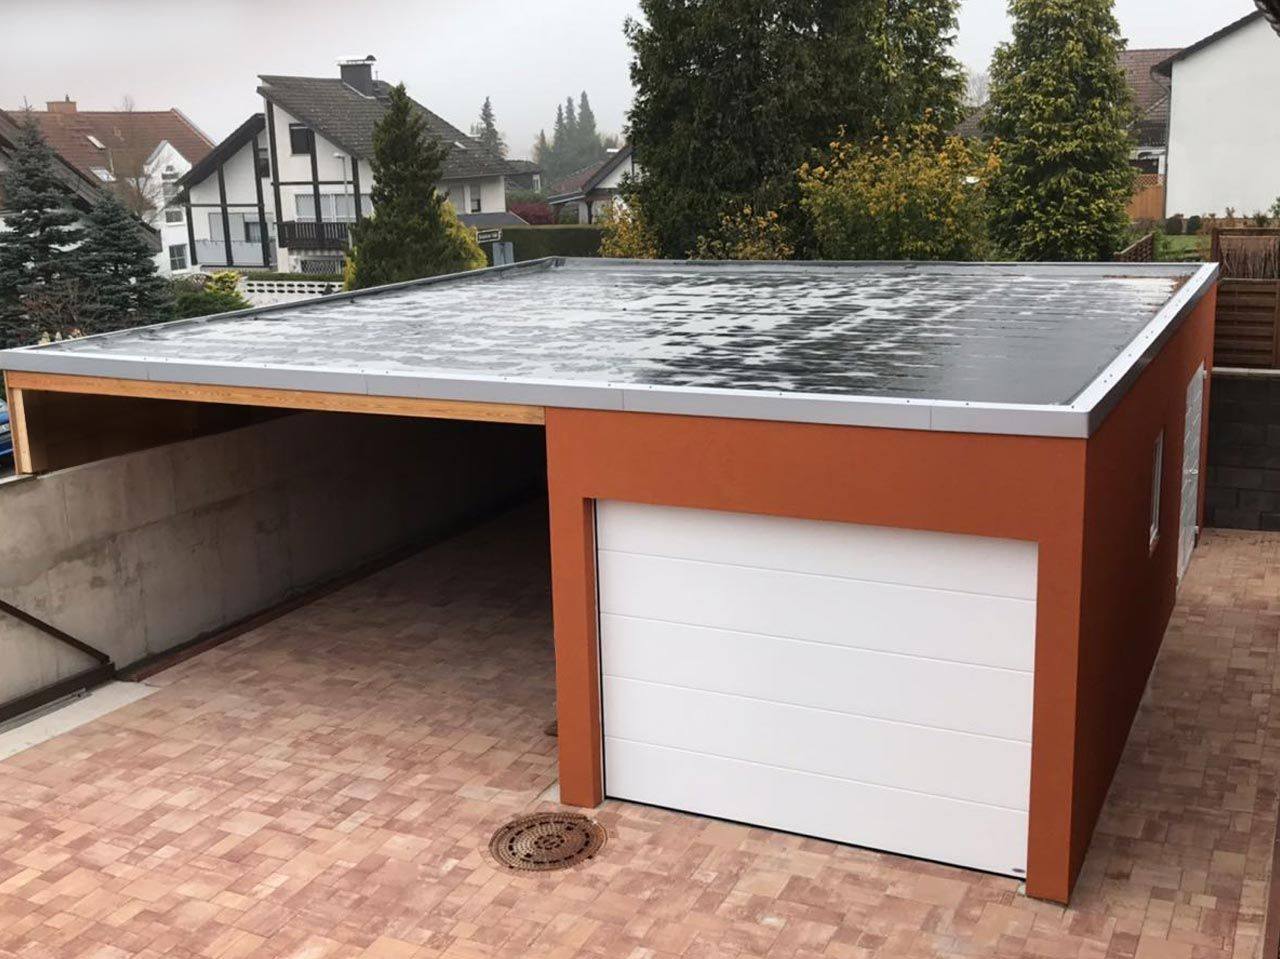 Garage Und Carport Kombination Garage Carport Kombination Mit Seitlicher Betonwand Garage